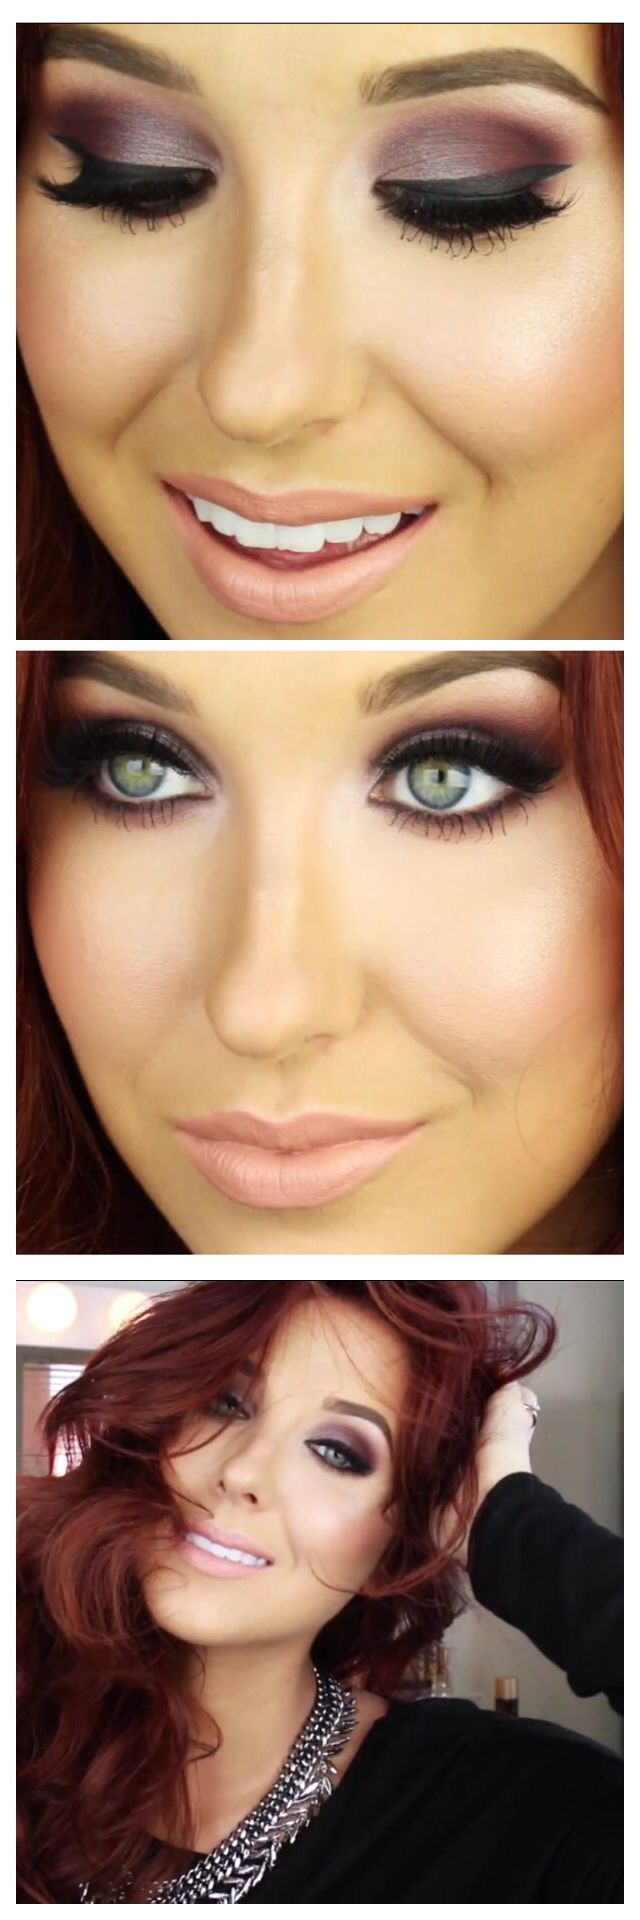 jaclyn hill purple hair. use these makeup hacks to prevent laziness spoil your appearance jaclyn hill is perfection ❤ ❤️ purple hair